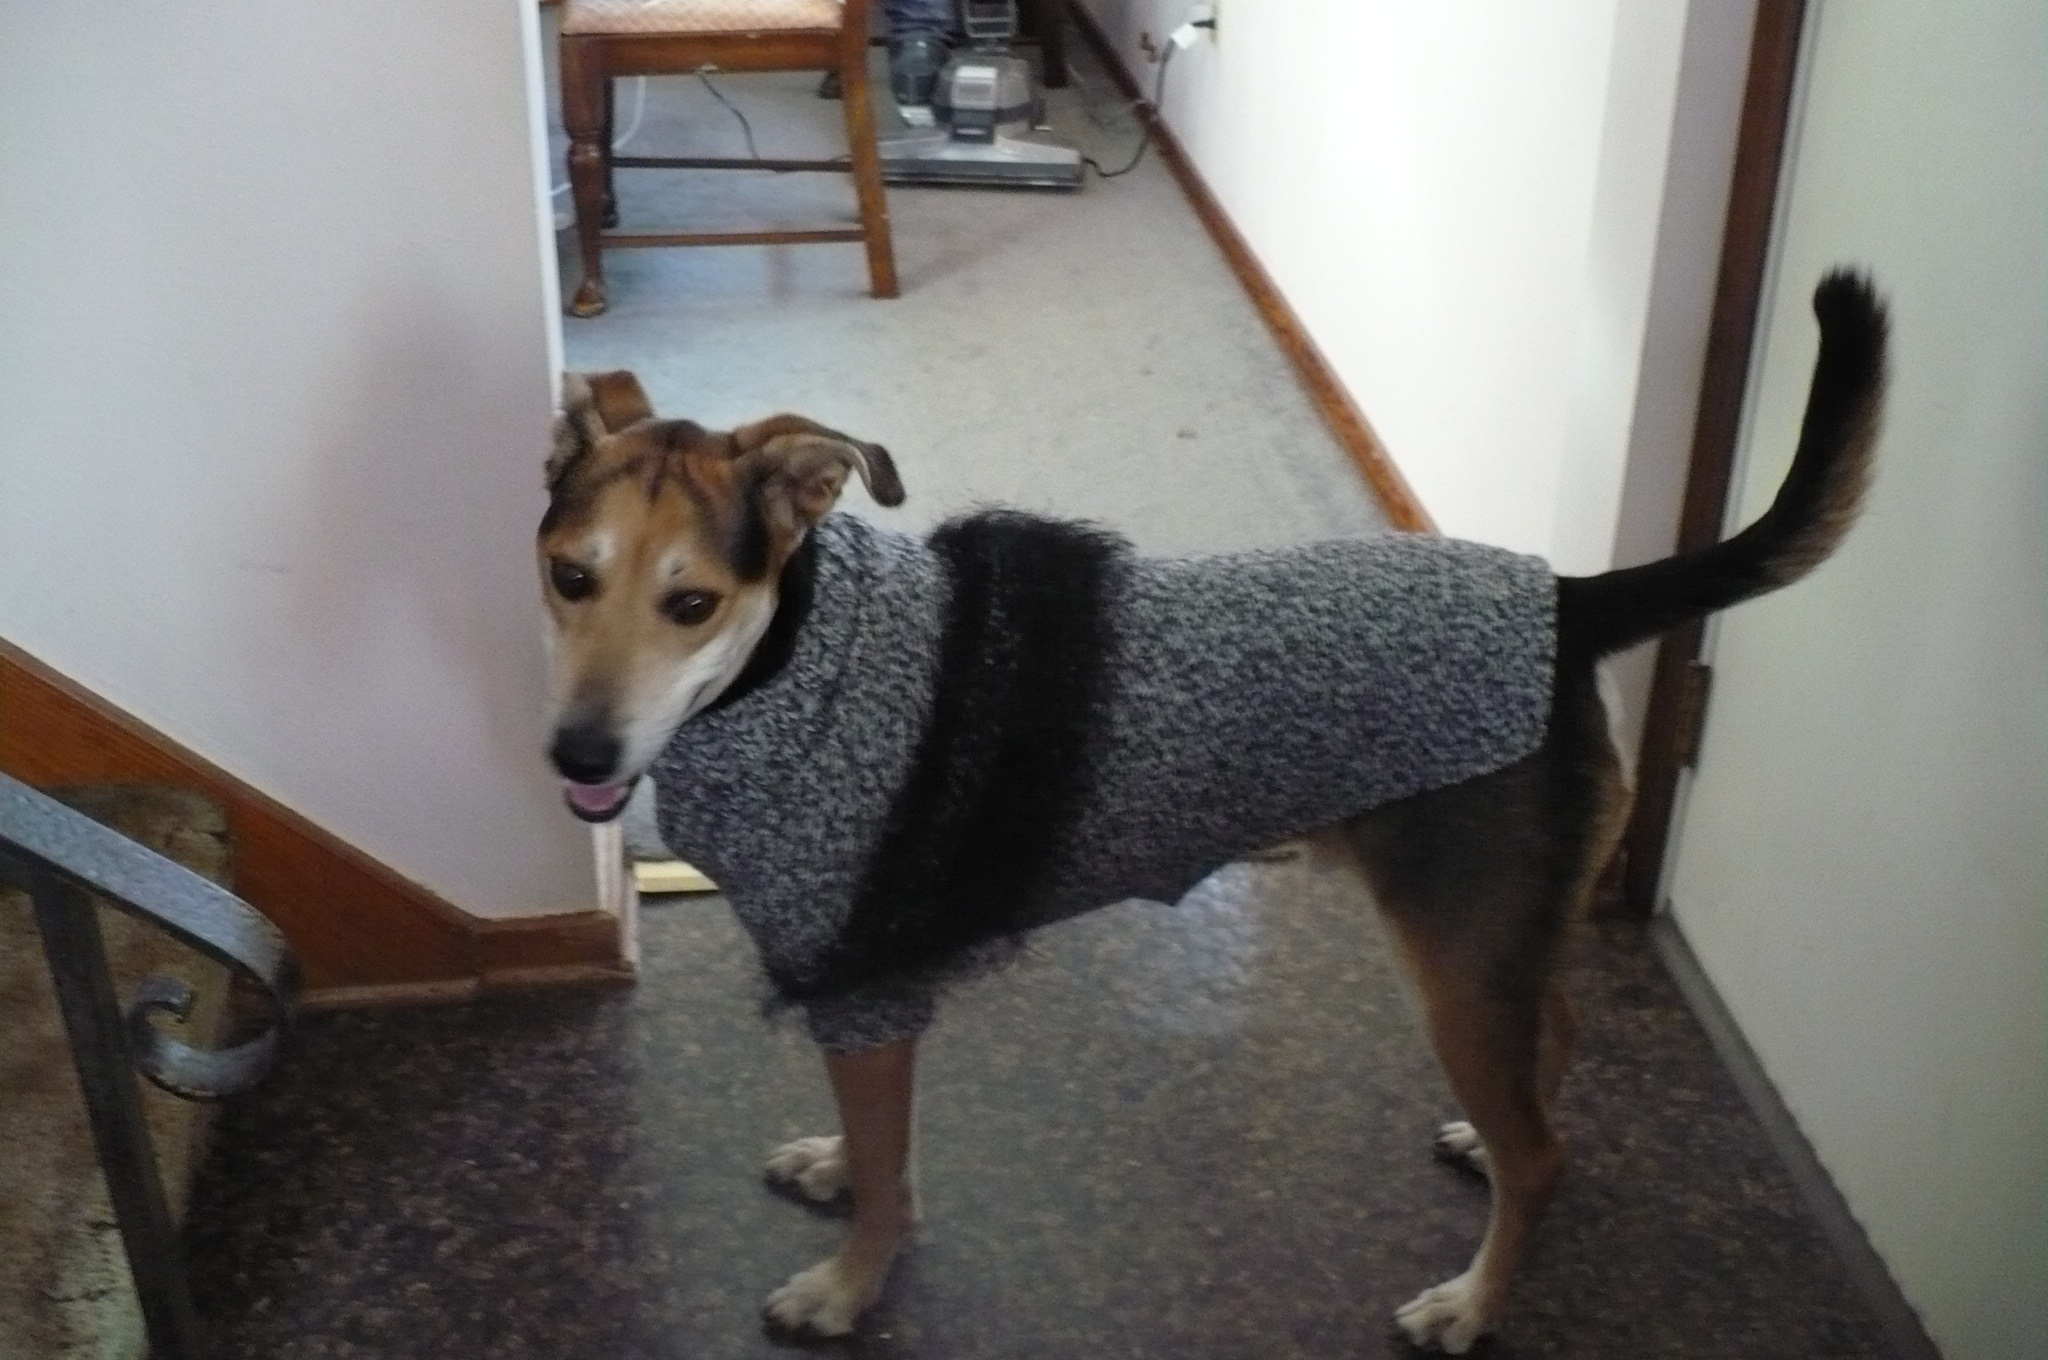 Steve the dog and his sweater